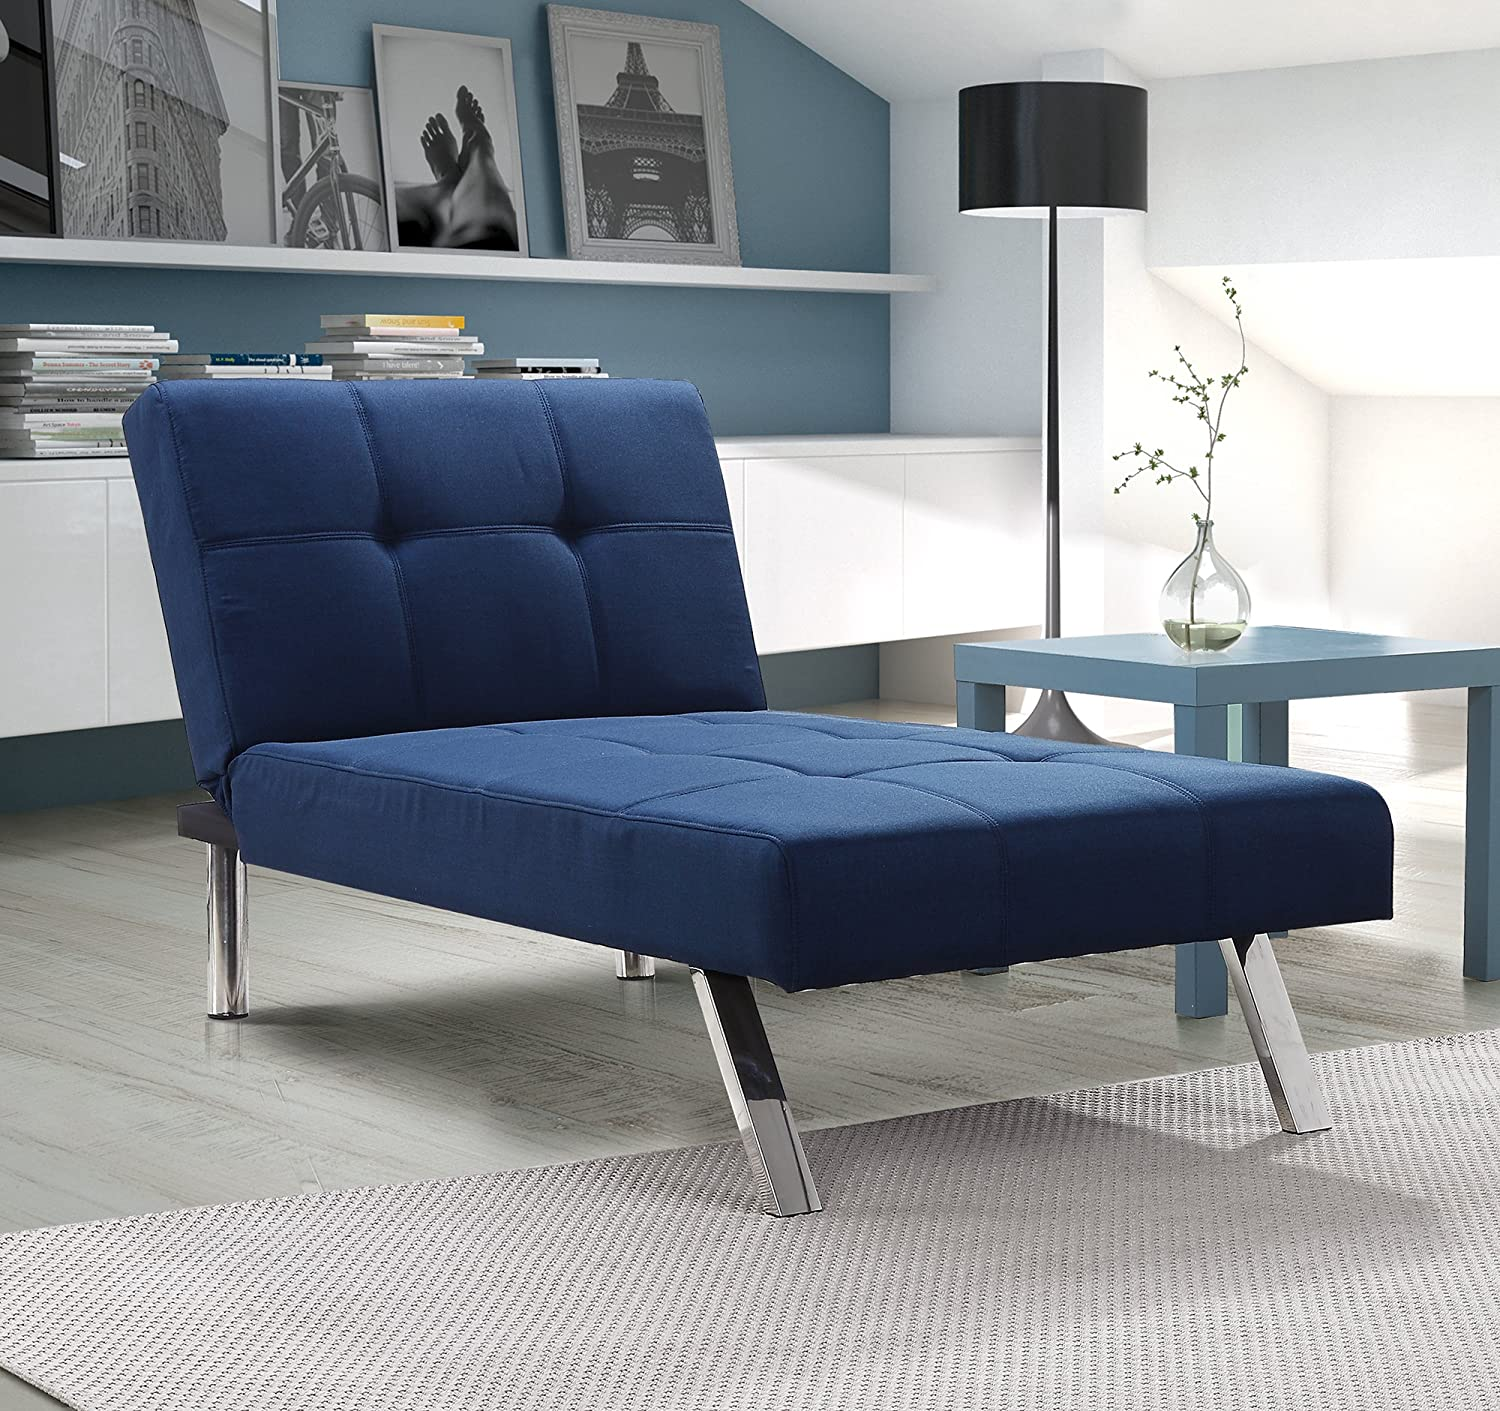 Amazon.com Layton Chaise Lounge Sofa Sectional in Premium Linen Available in Navy and Tan with Slanted Chrome Legs (Chaise Navy) Kitchen u0026 Dining : navy sectional - Sectionals, Sofas & Couches